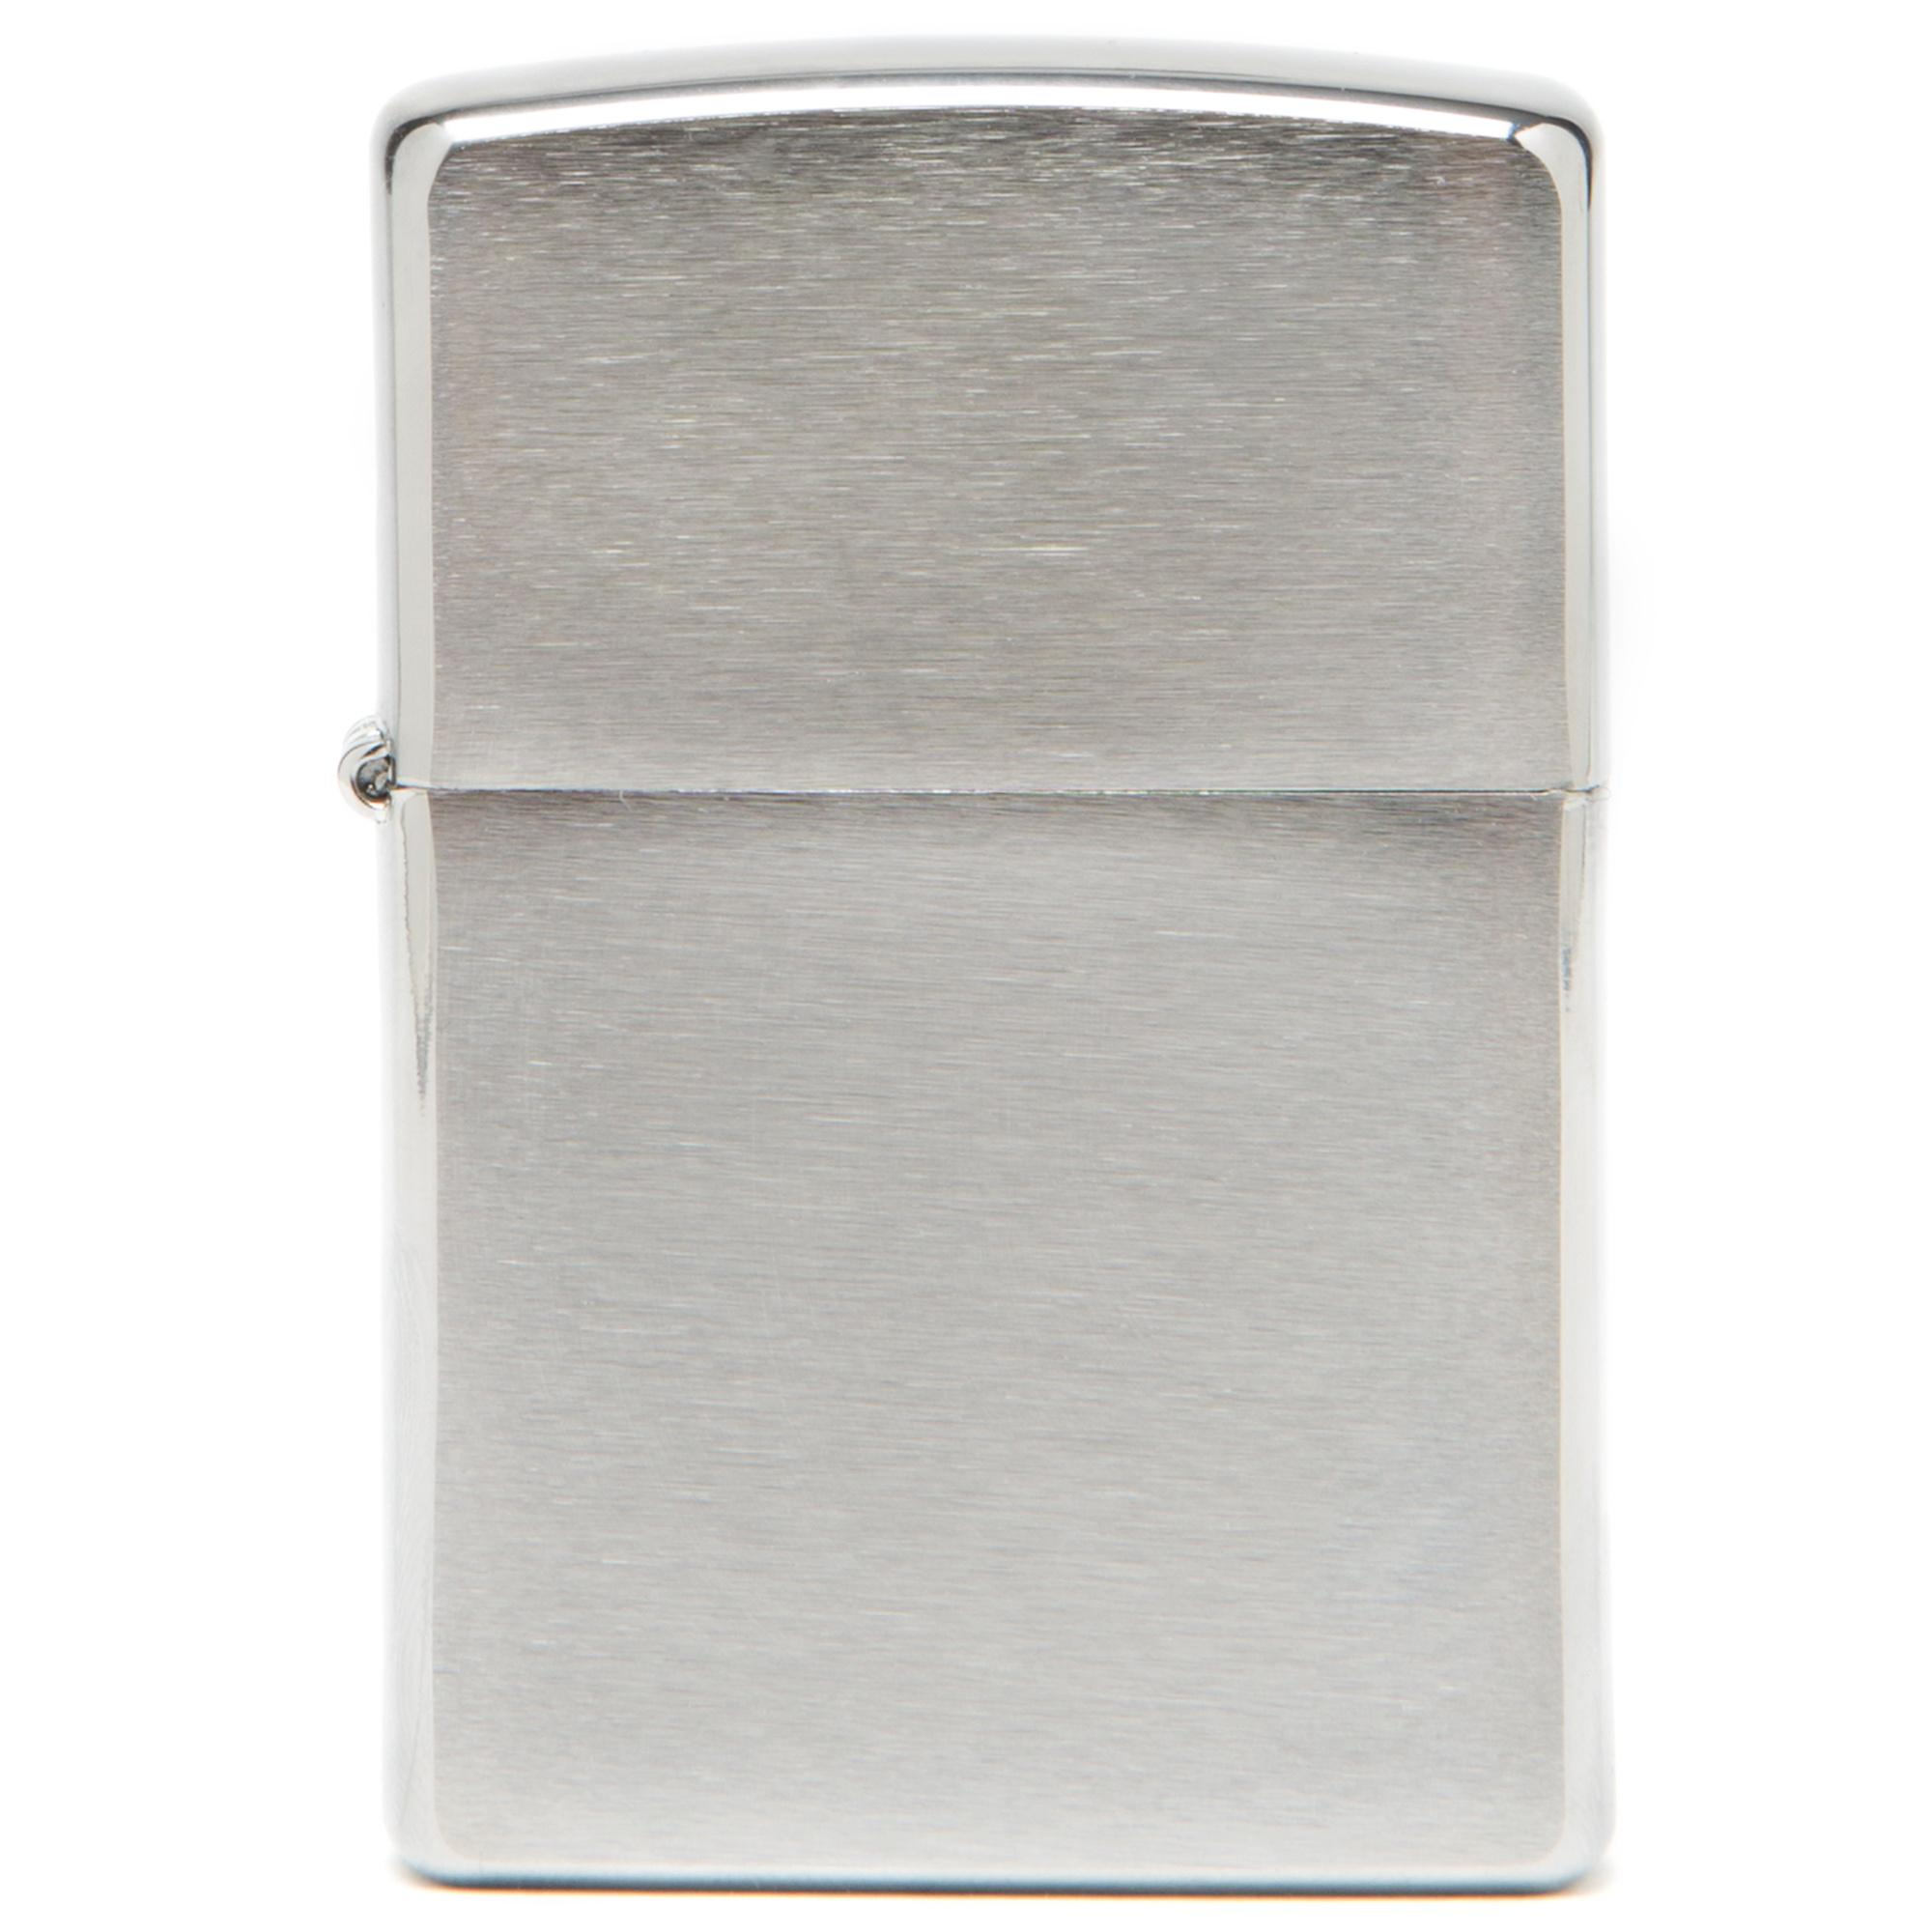 Zippo Brushed Chrome Lighter Silver